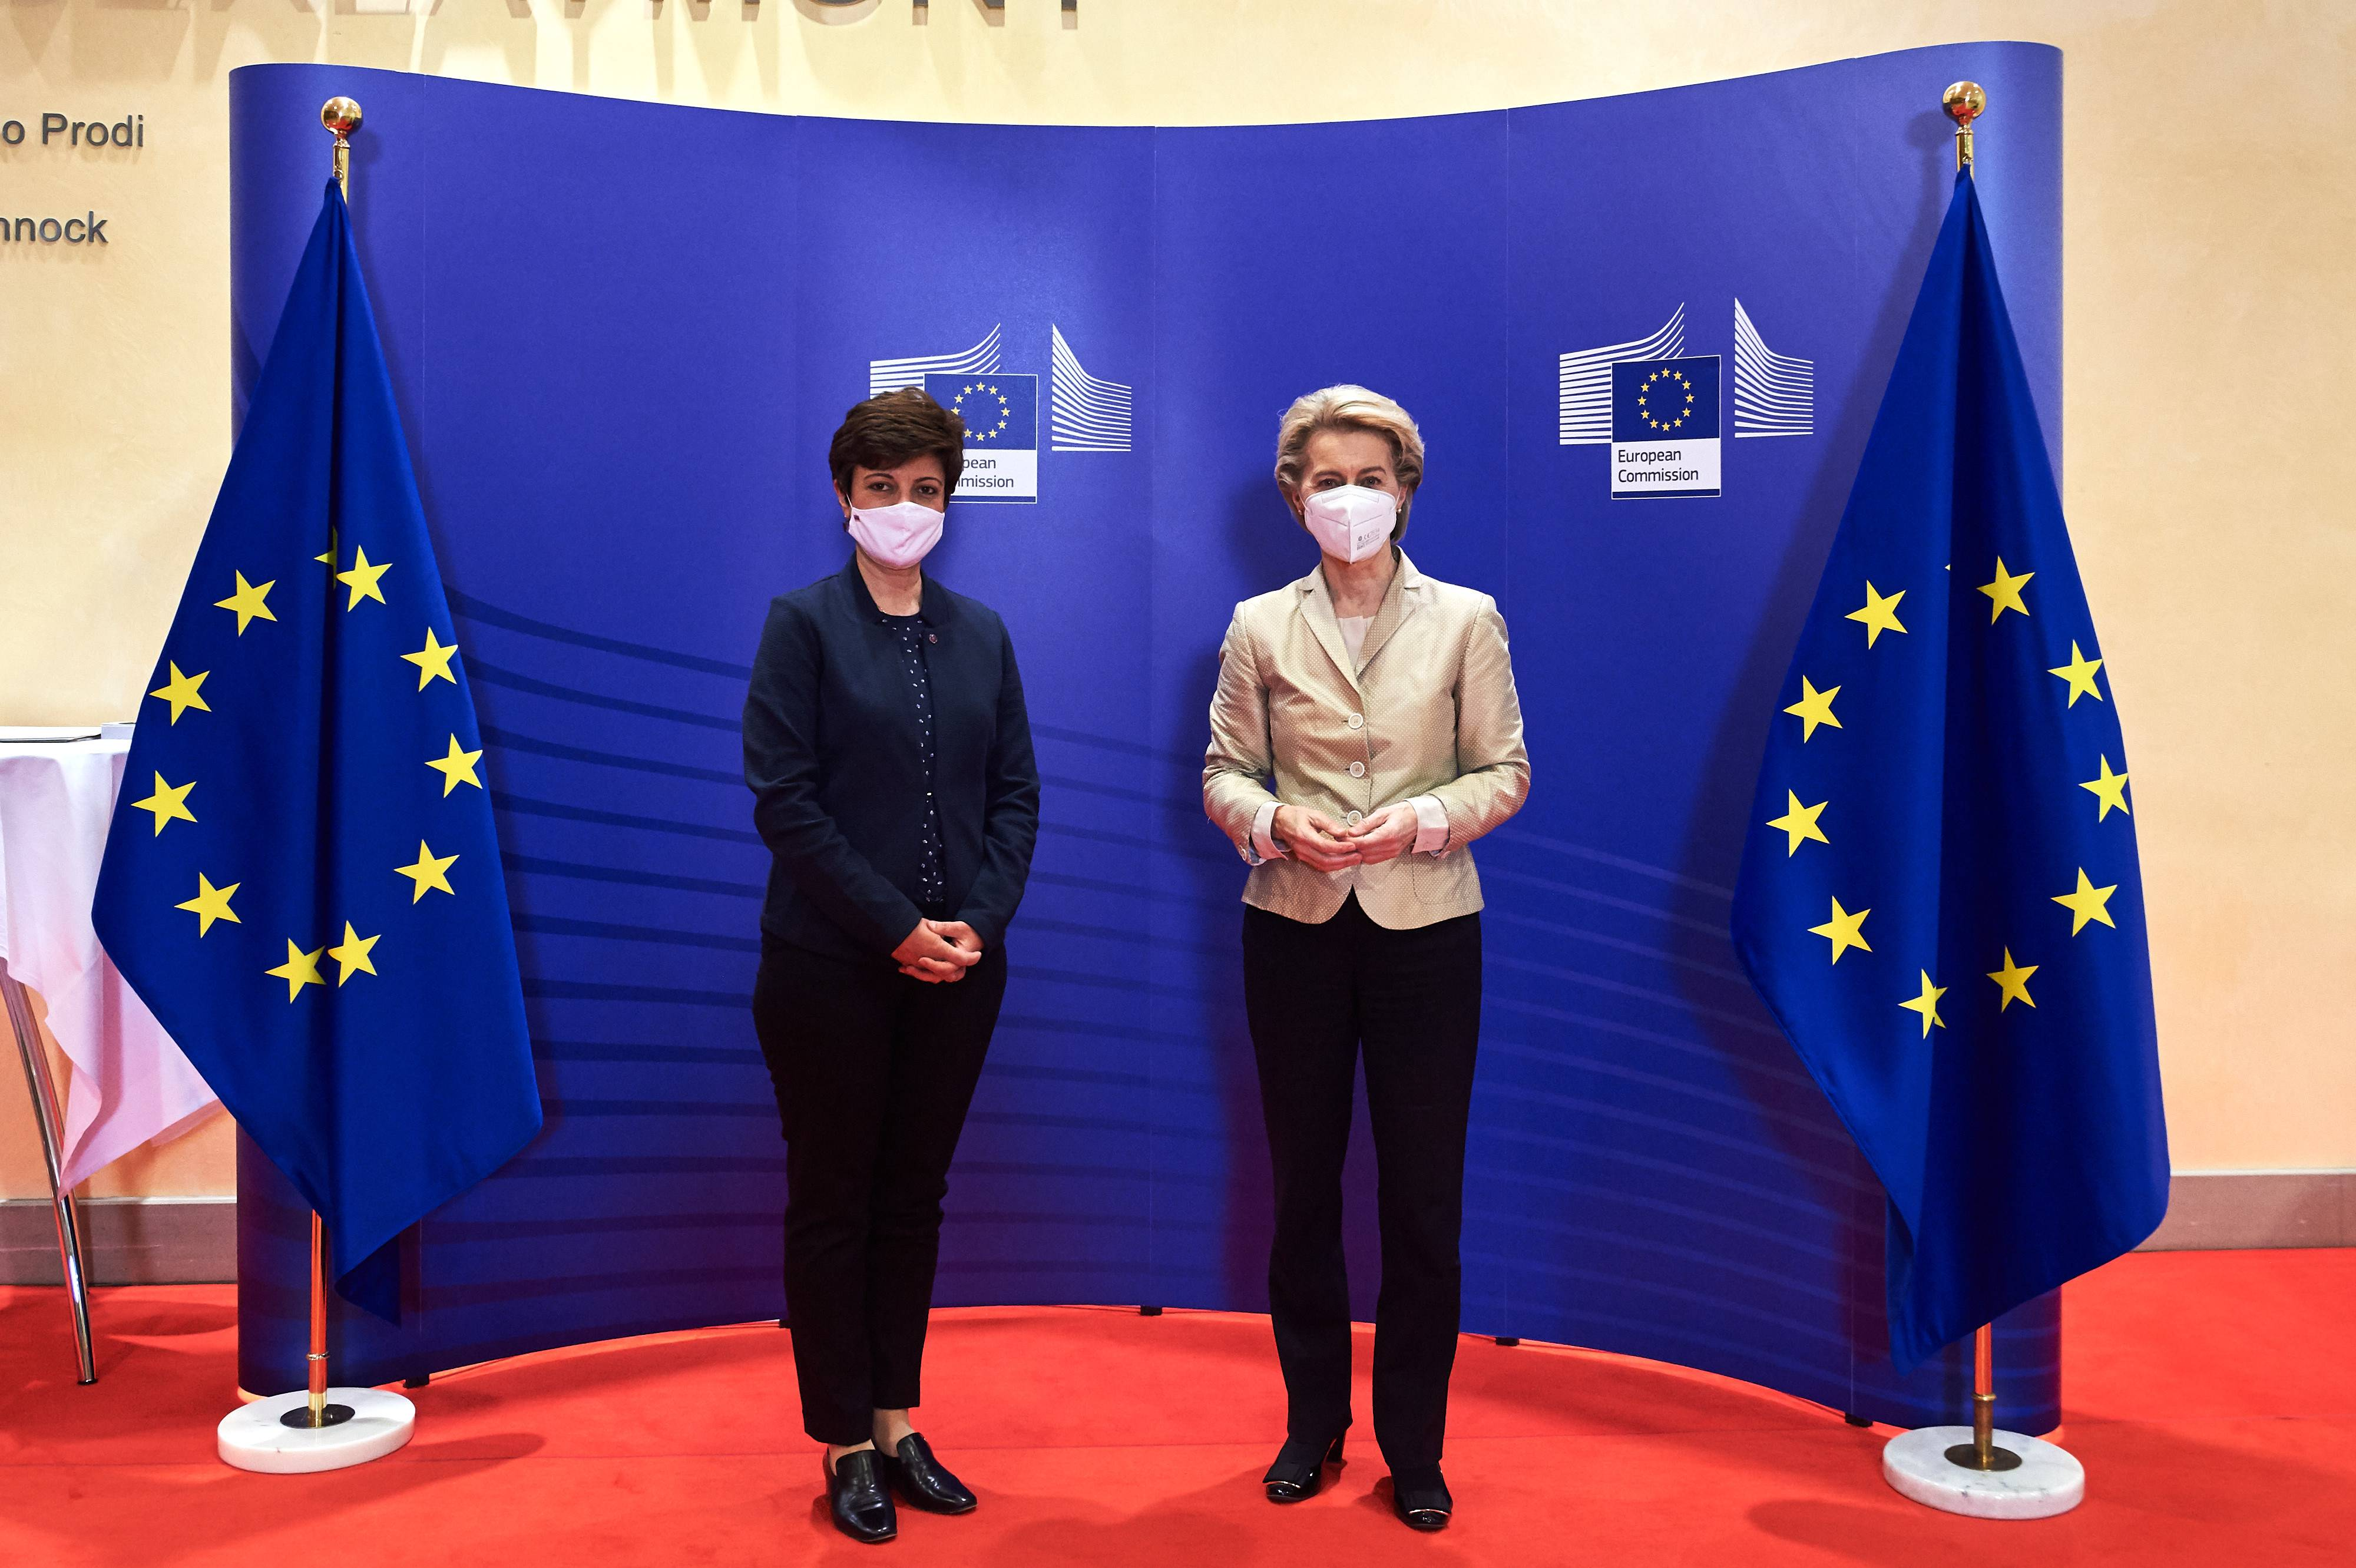 Head of the Mission of the Republic of Armenia to the European Union presented her credentials to the President of the European Commission